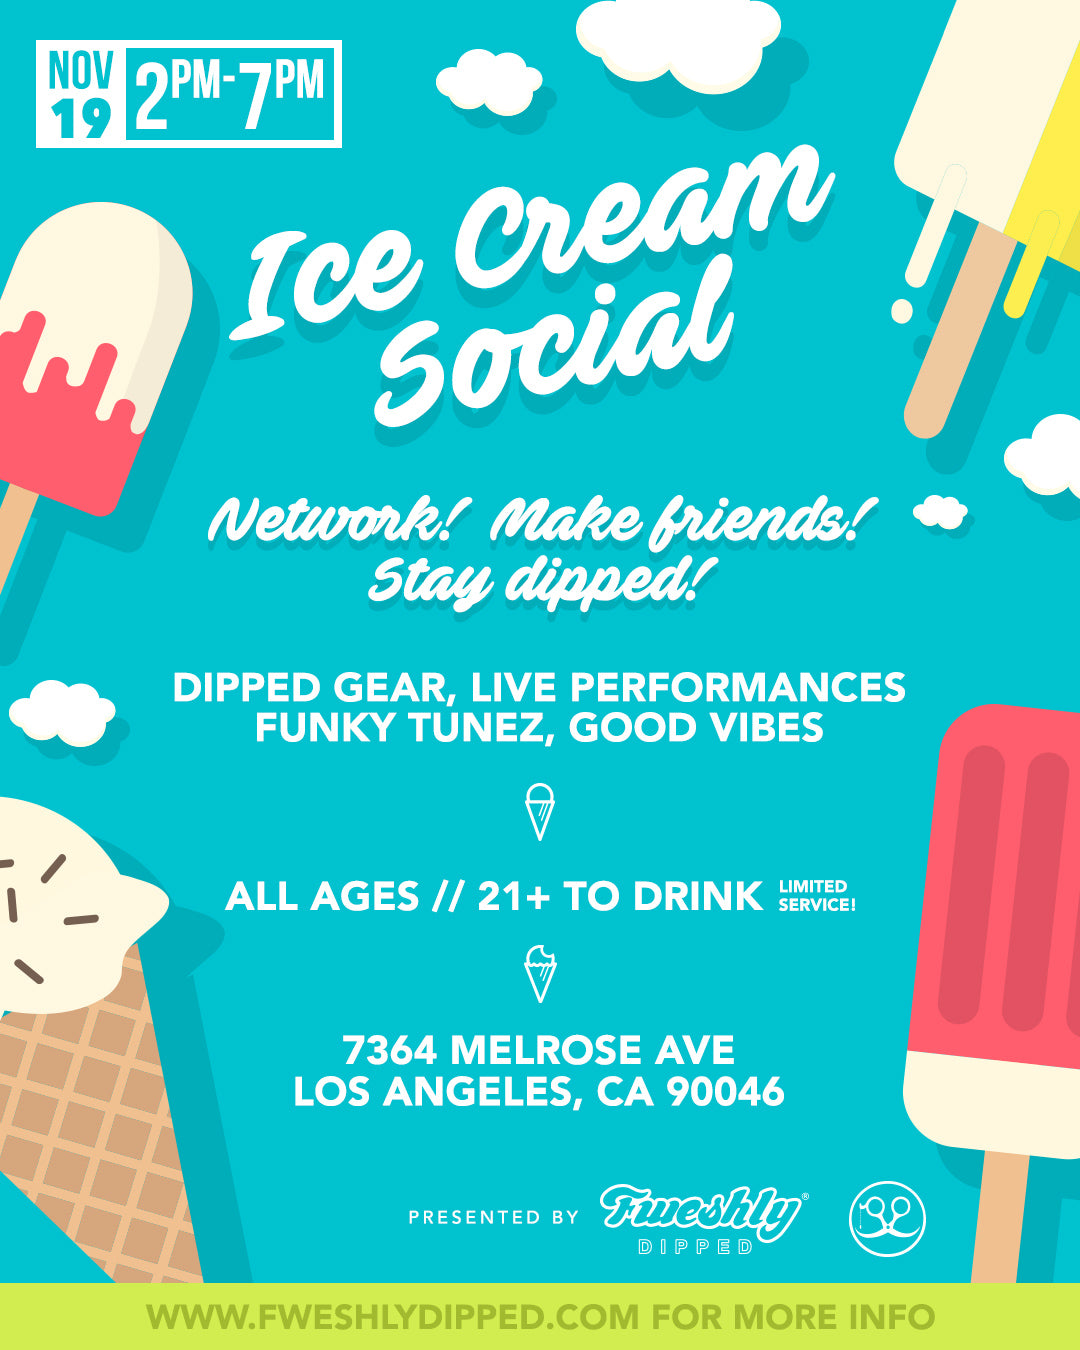 Fweshly Dipped LA Ice Cream Social